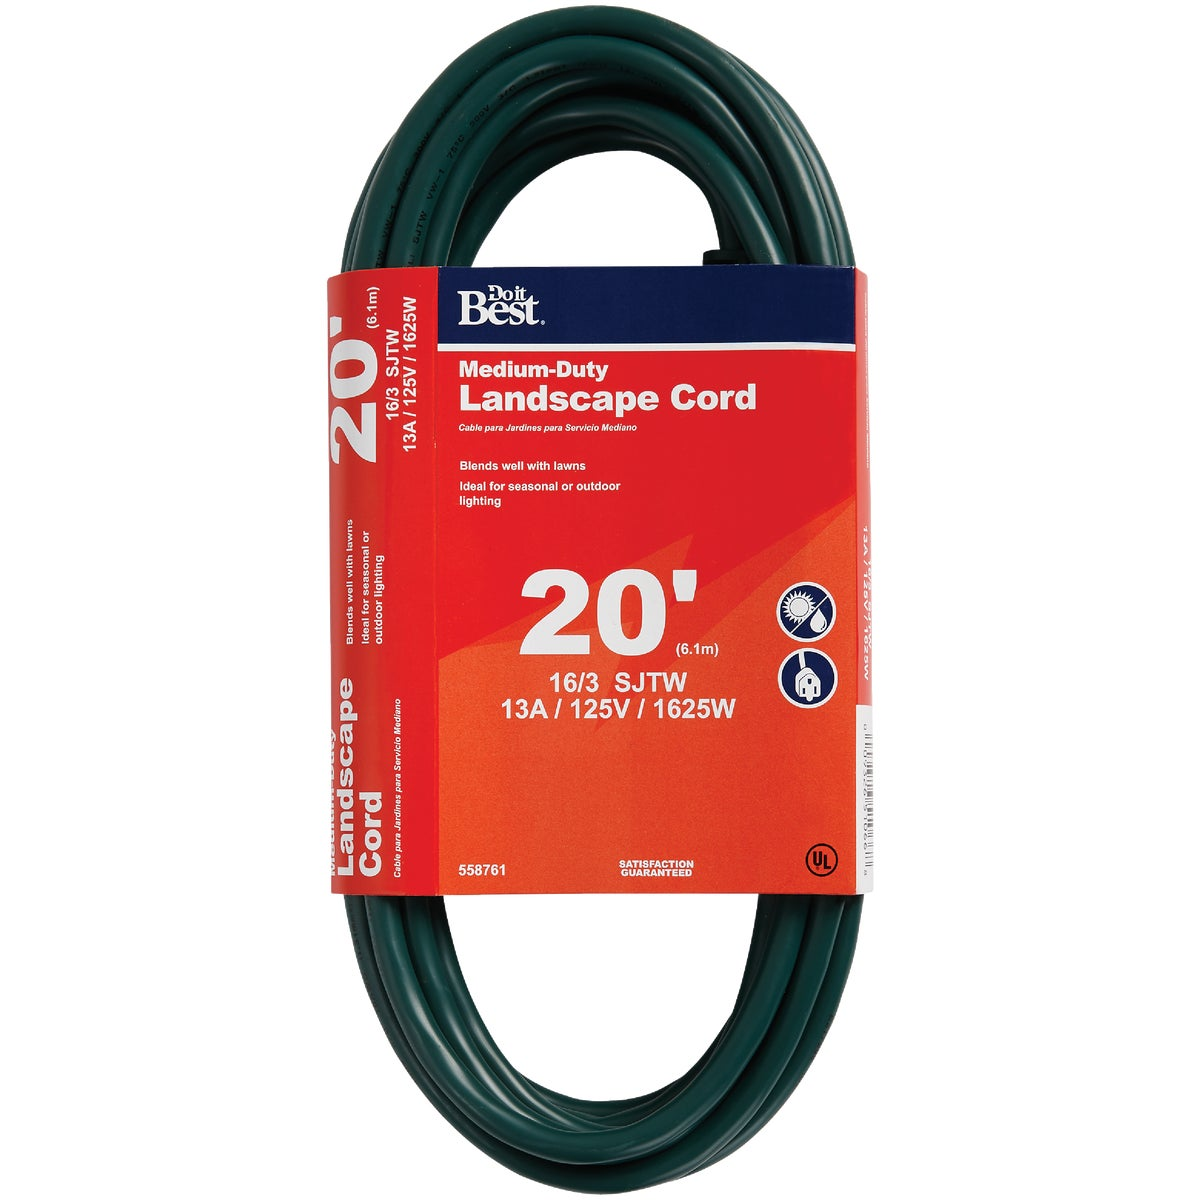 20' 16/3 GREEN EXT CORD - OU-JTW163-20X-GR by Do it Best